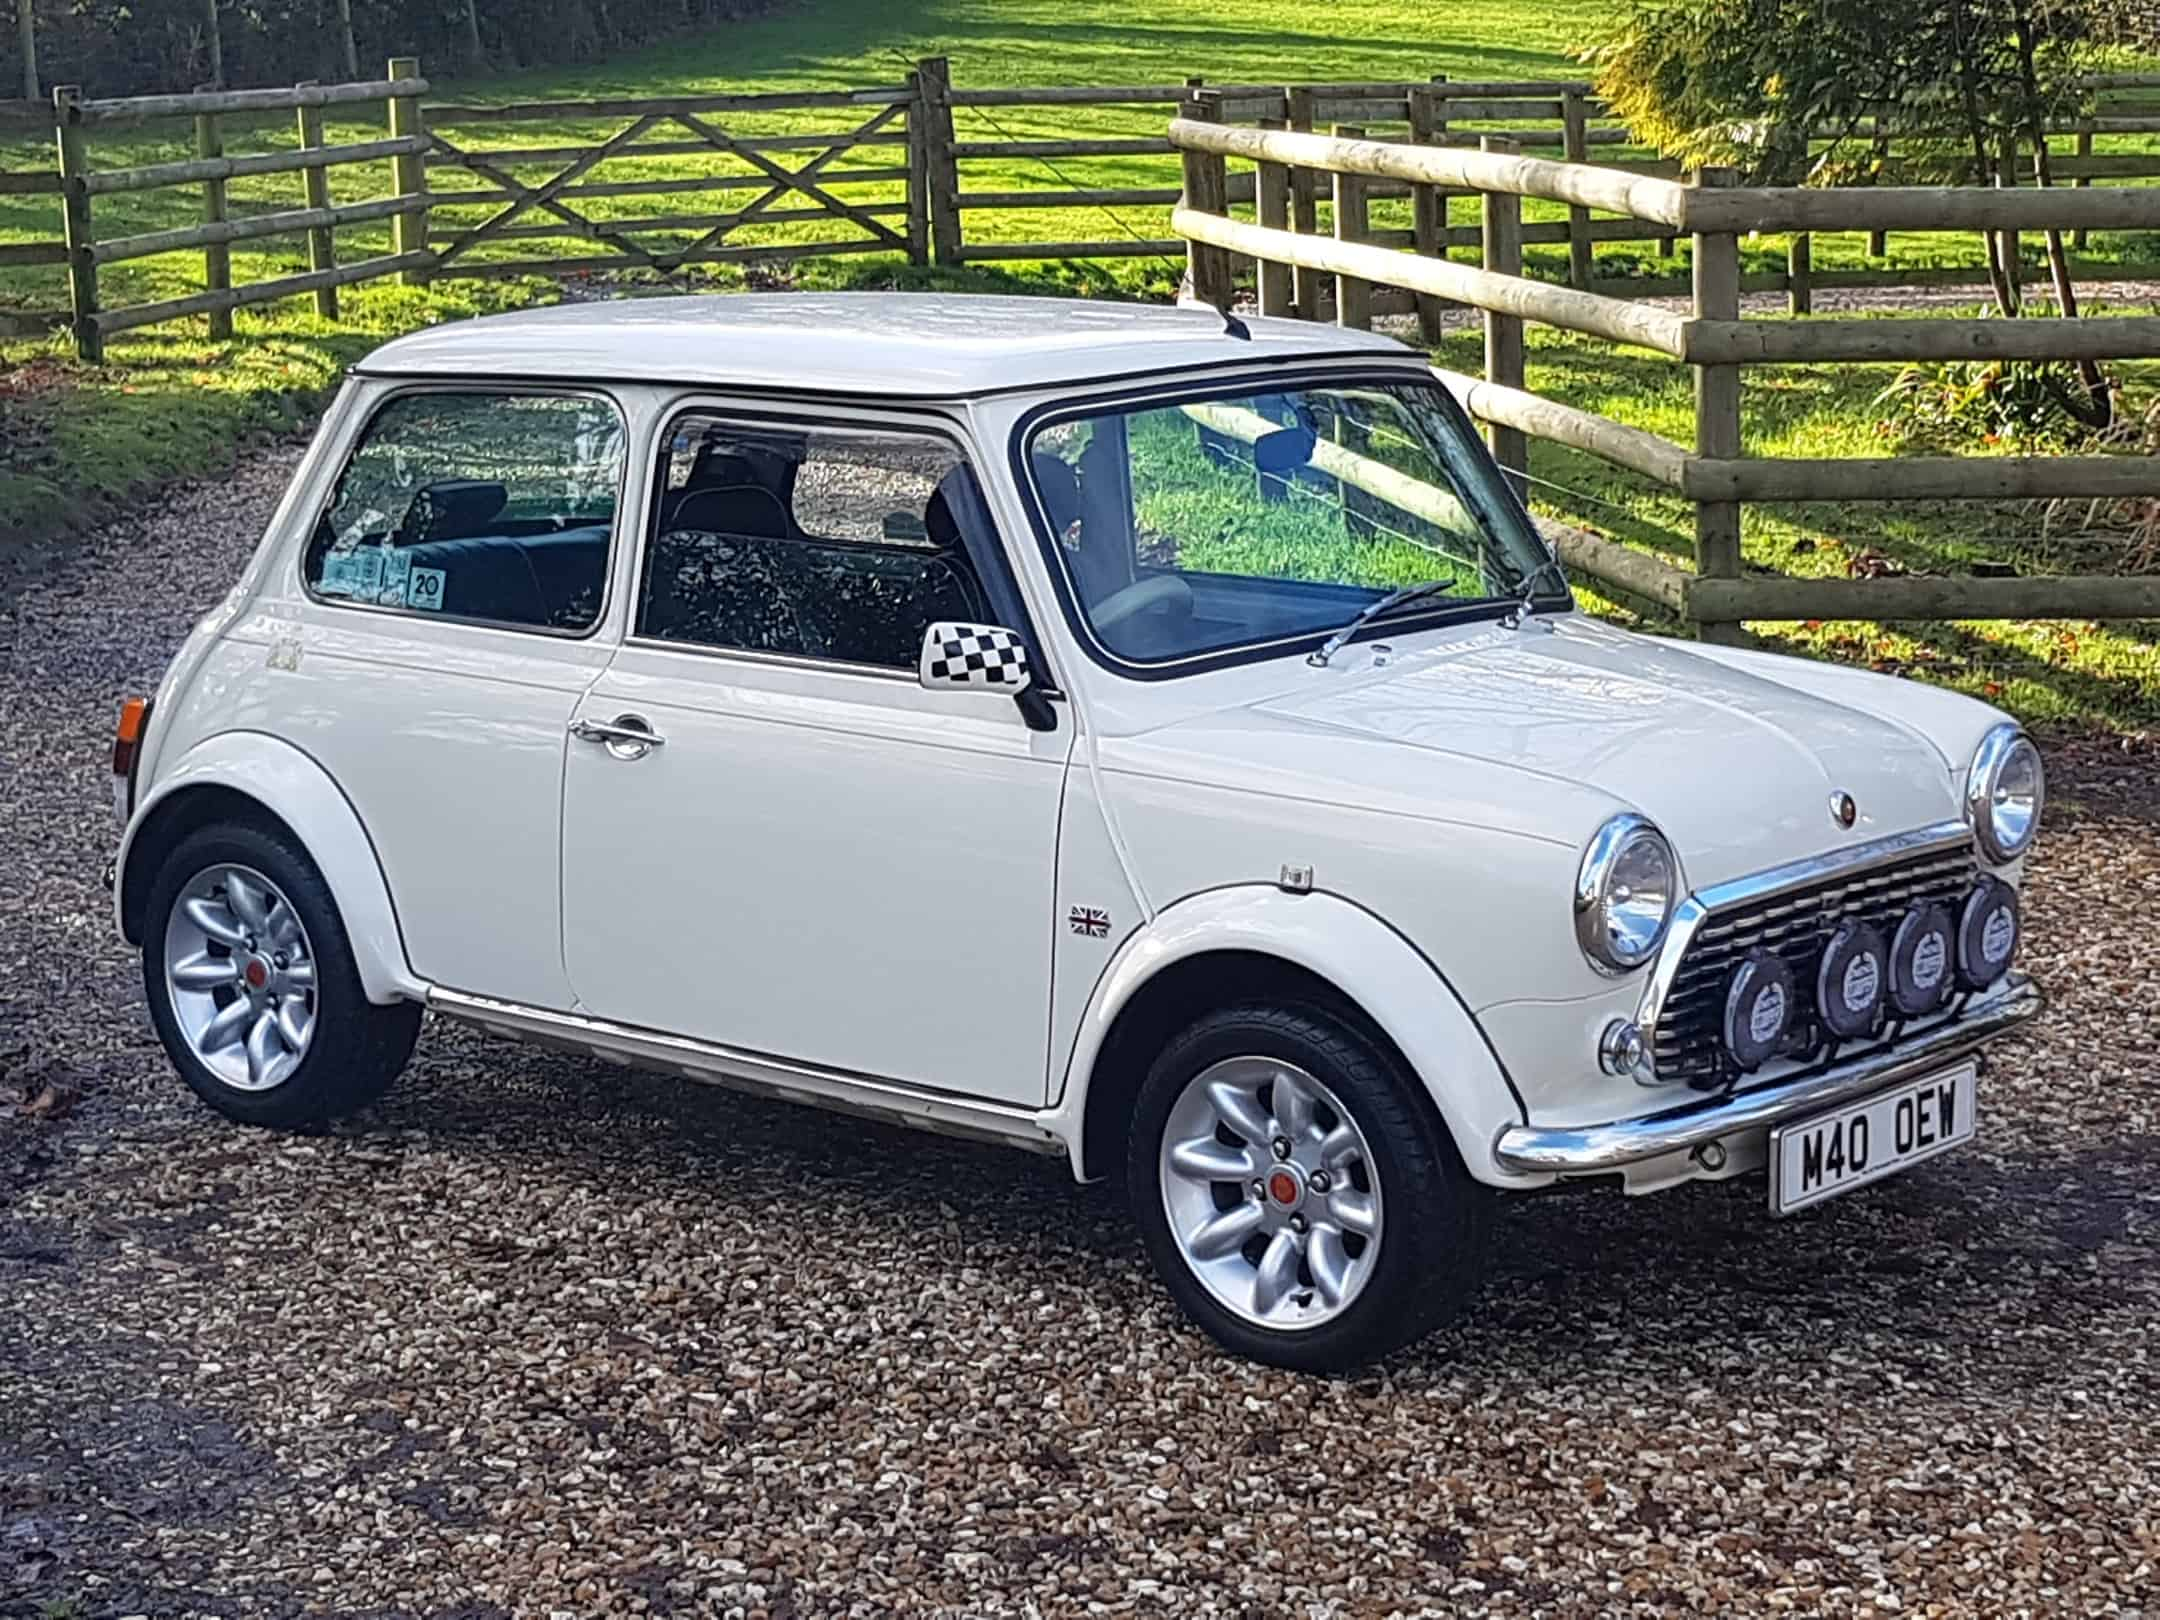 ** DEPOSIT PAID ** Very Rare Mini Cooper 40 LE In Old English White On Just 25900 Miles From New